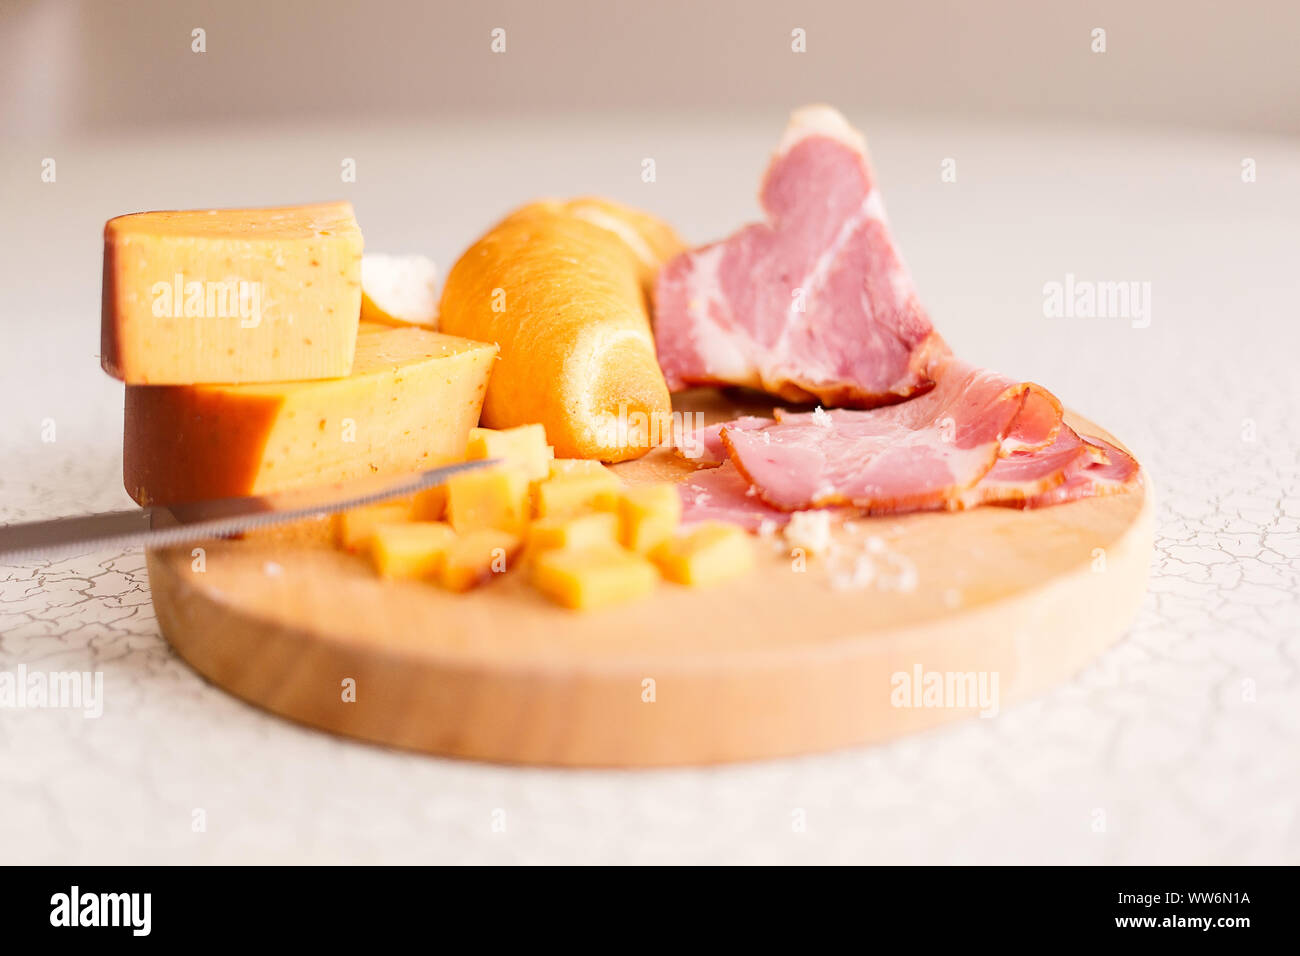 Ham, cheese and bread on a wooden cutting board. The breakfast in the village. Snack with beer or wine. Stock Photo